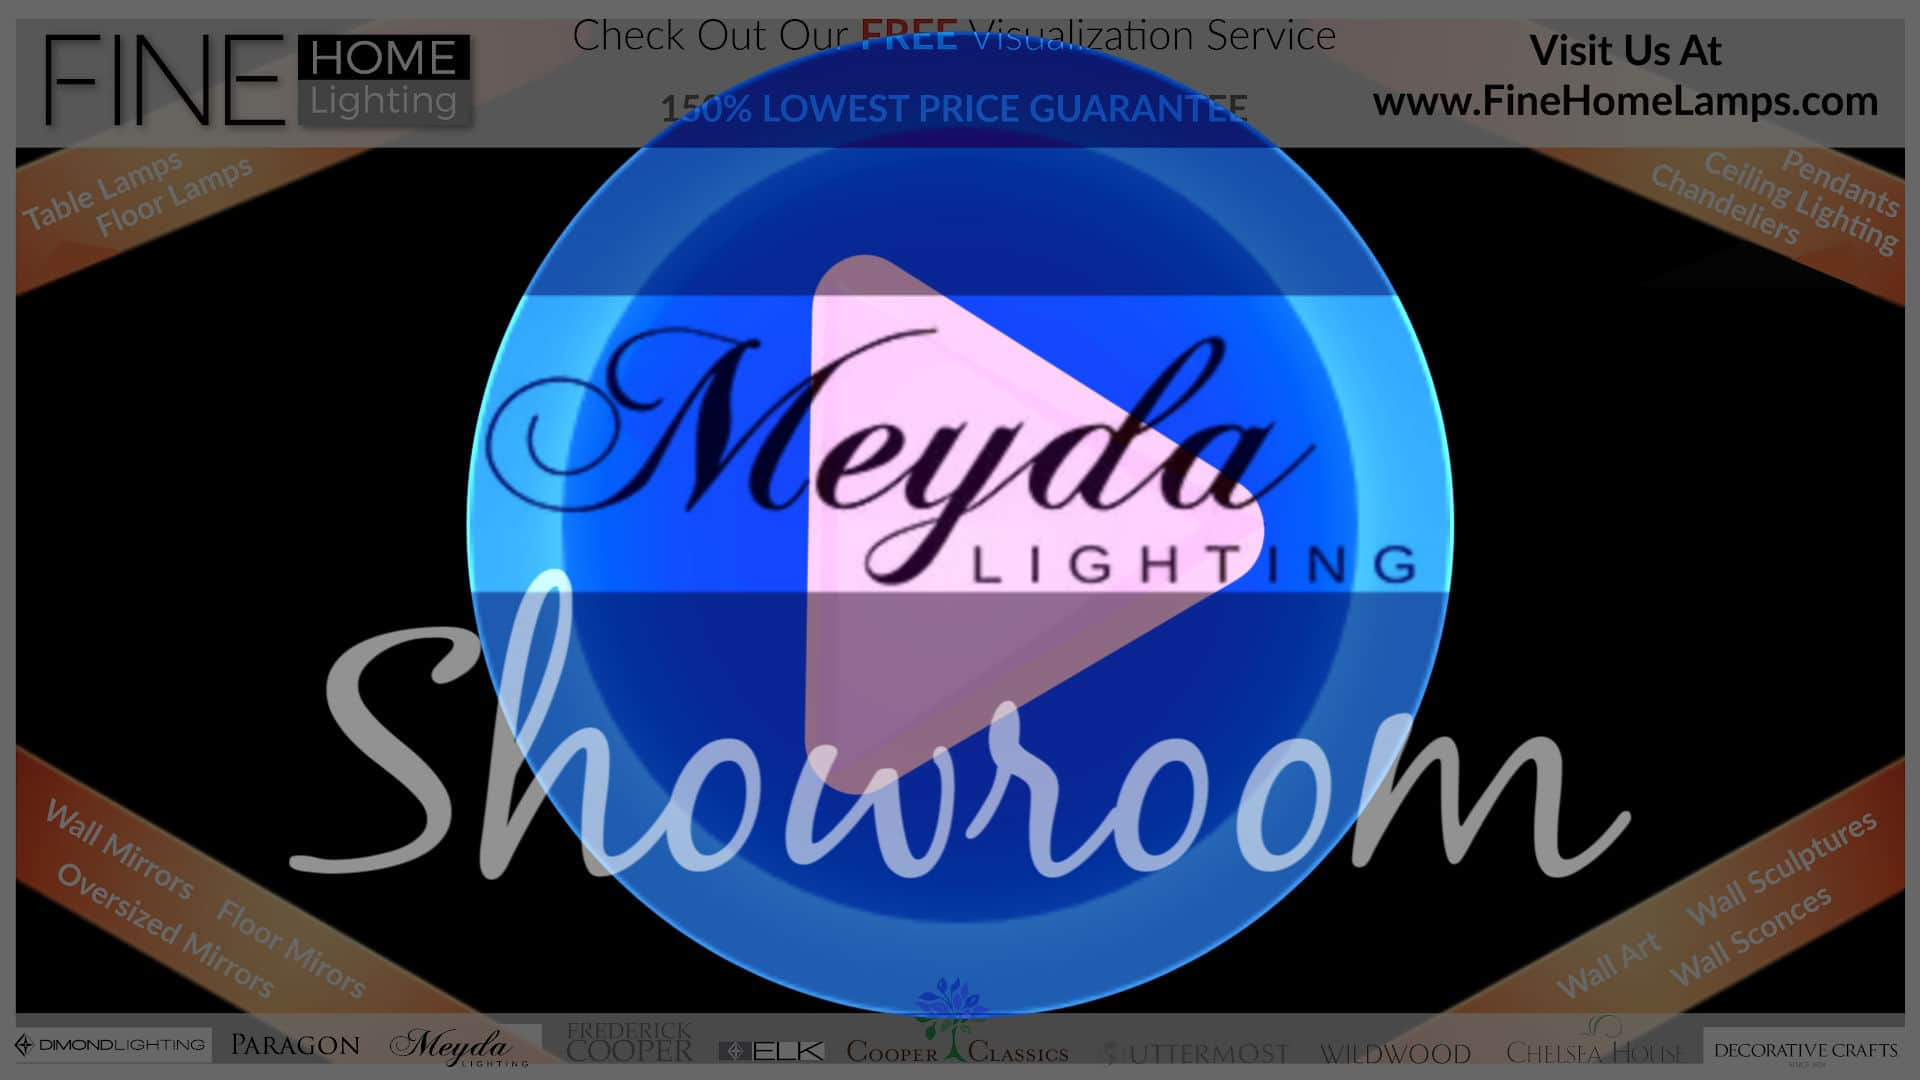 Meyda-Showroom-Thanks-for-watching-this-video-Get-an-additional-15-percent-off-your-next-purchase-Use-Coupon-Code-VIDEO